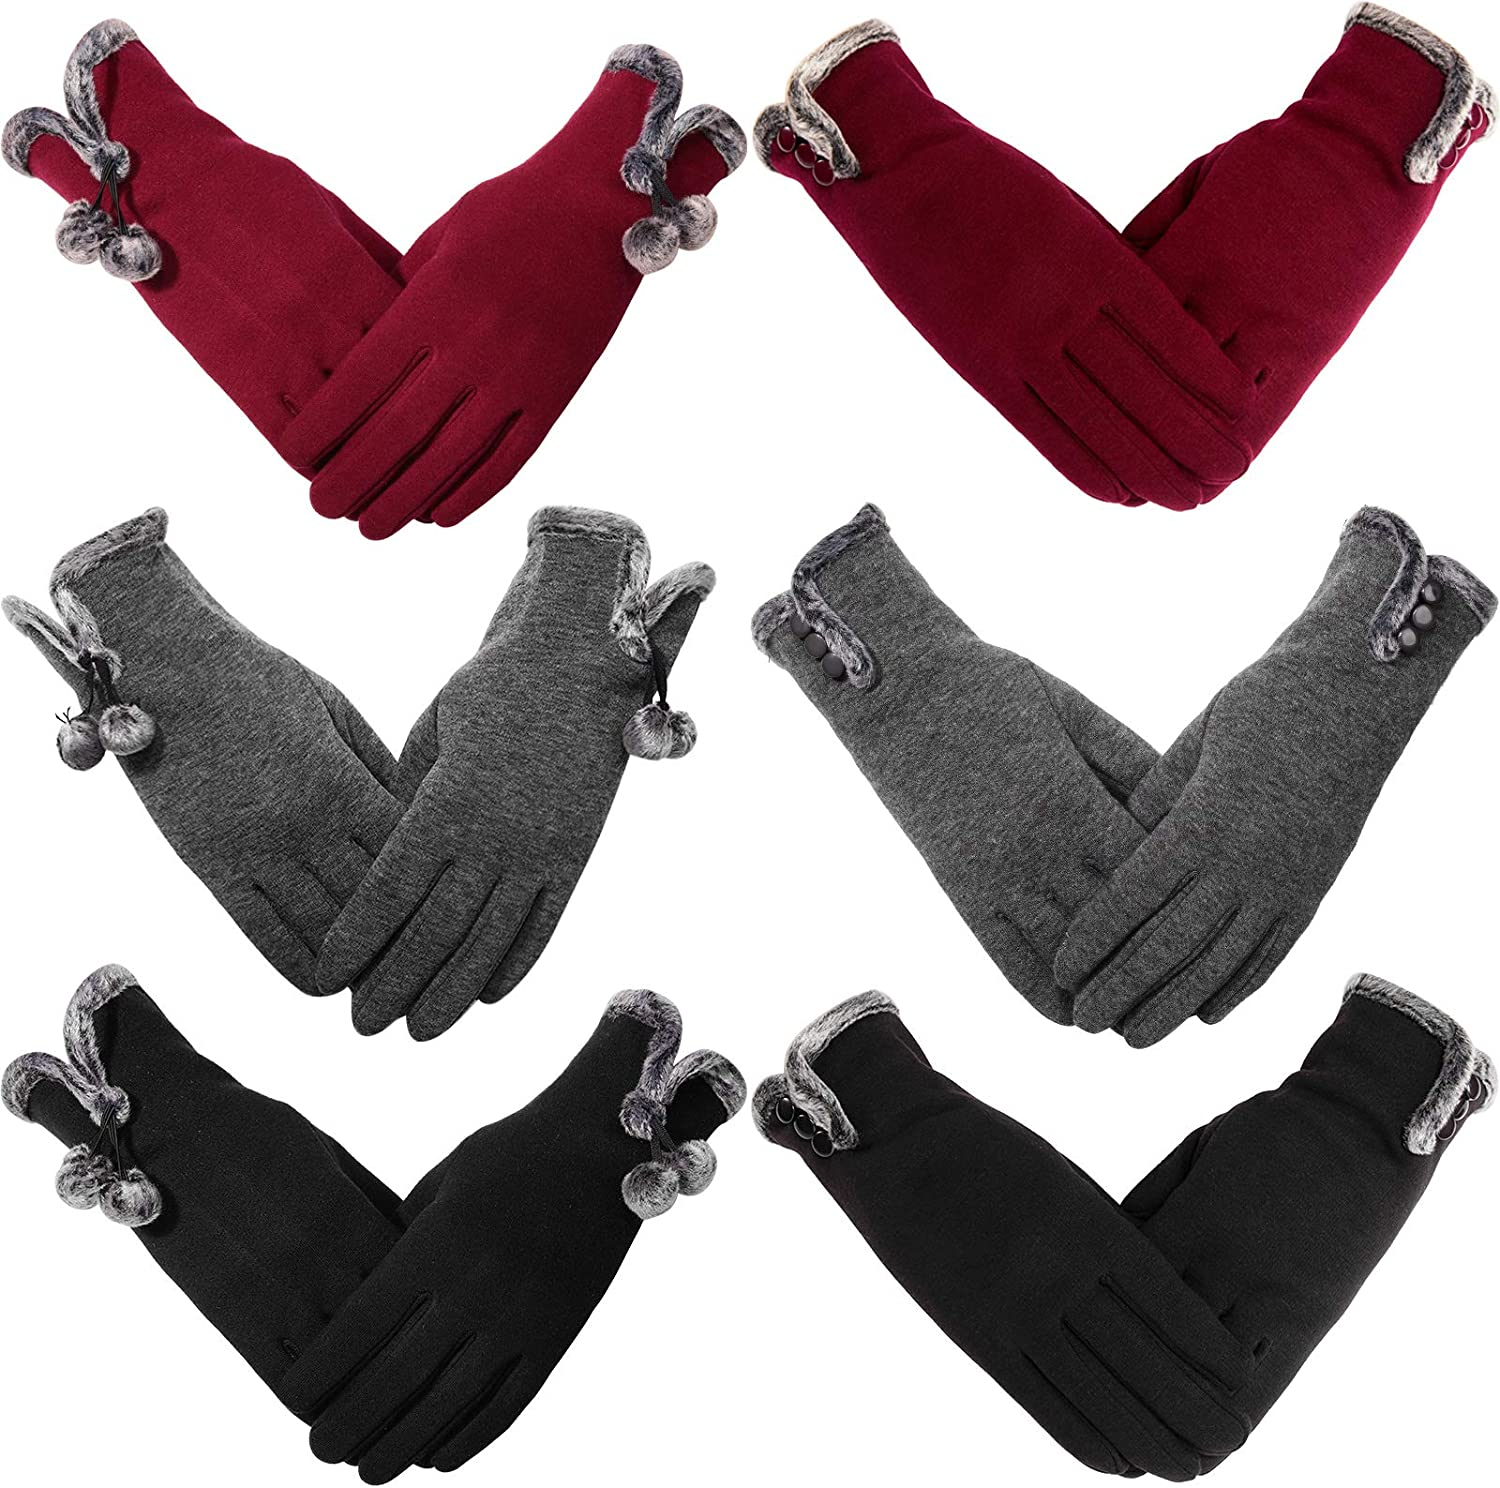 6 Pairs Women Gloves Winter Warm Touchscreen Finger Gloves Windproof Cold Weather Mitten Gloves for Women Girls, 3 Colors